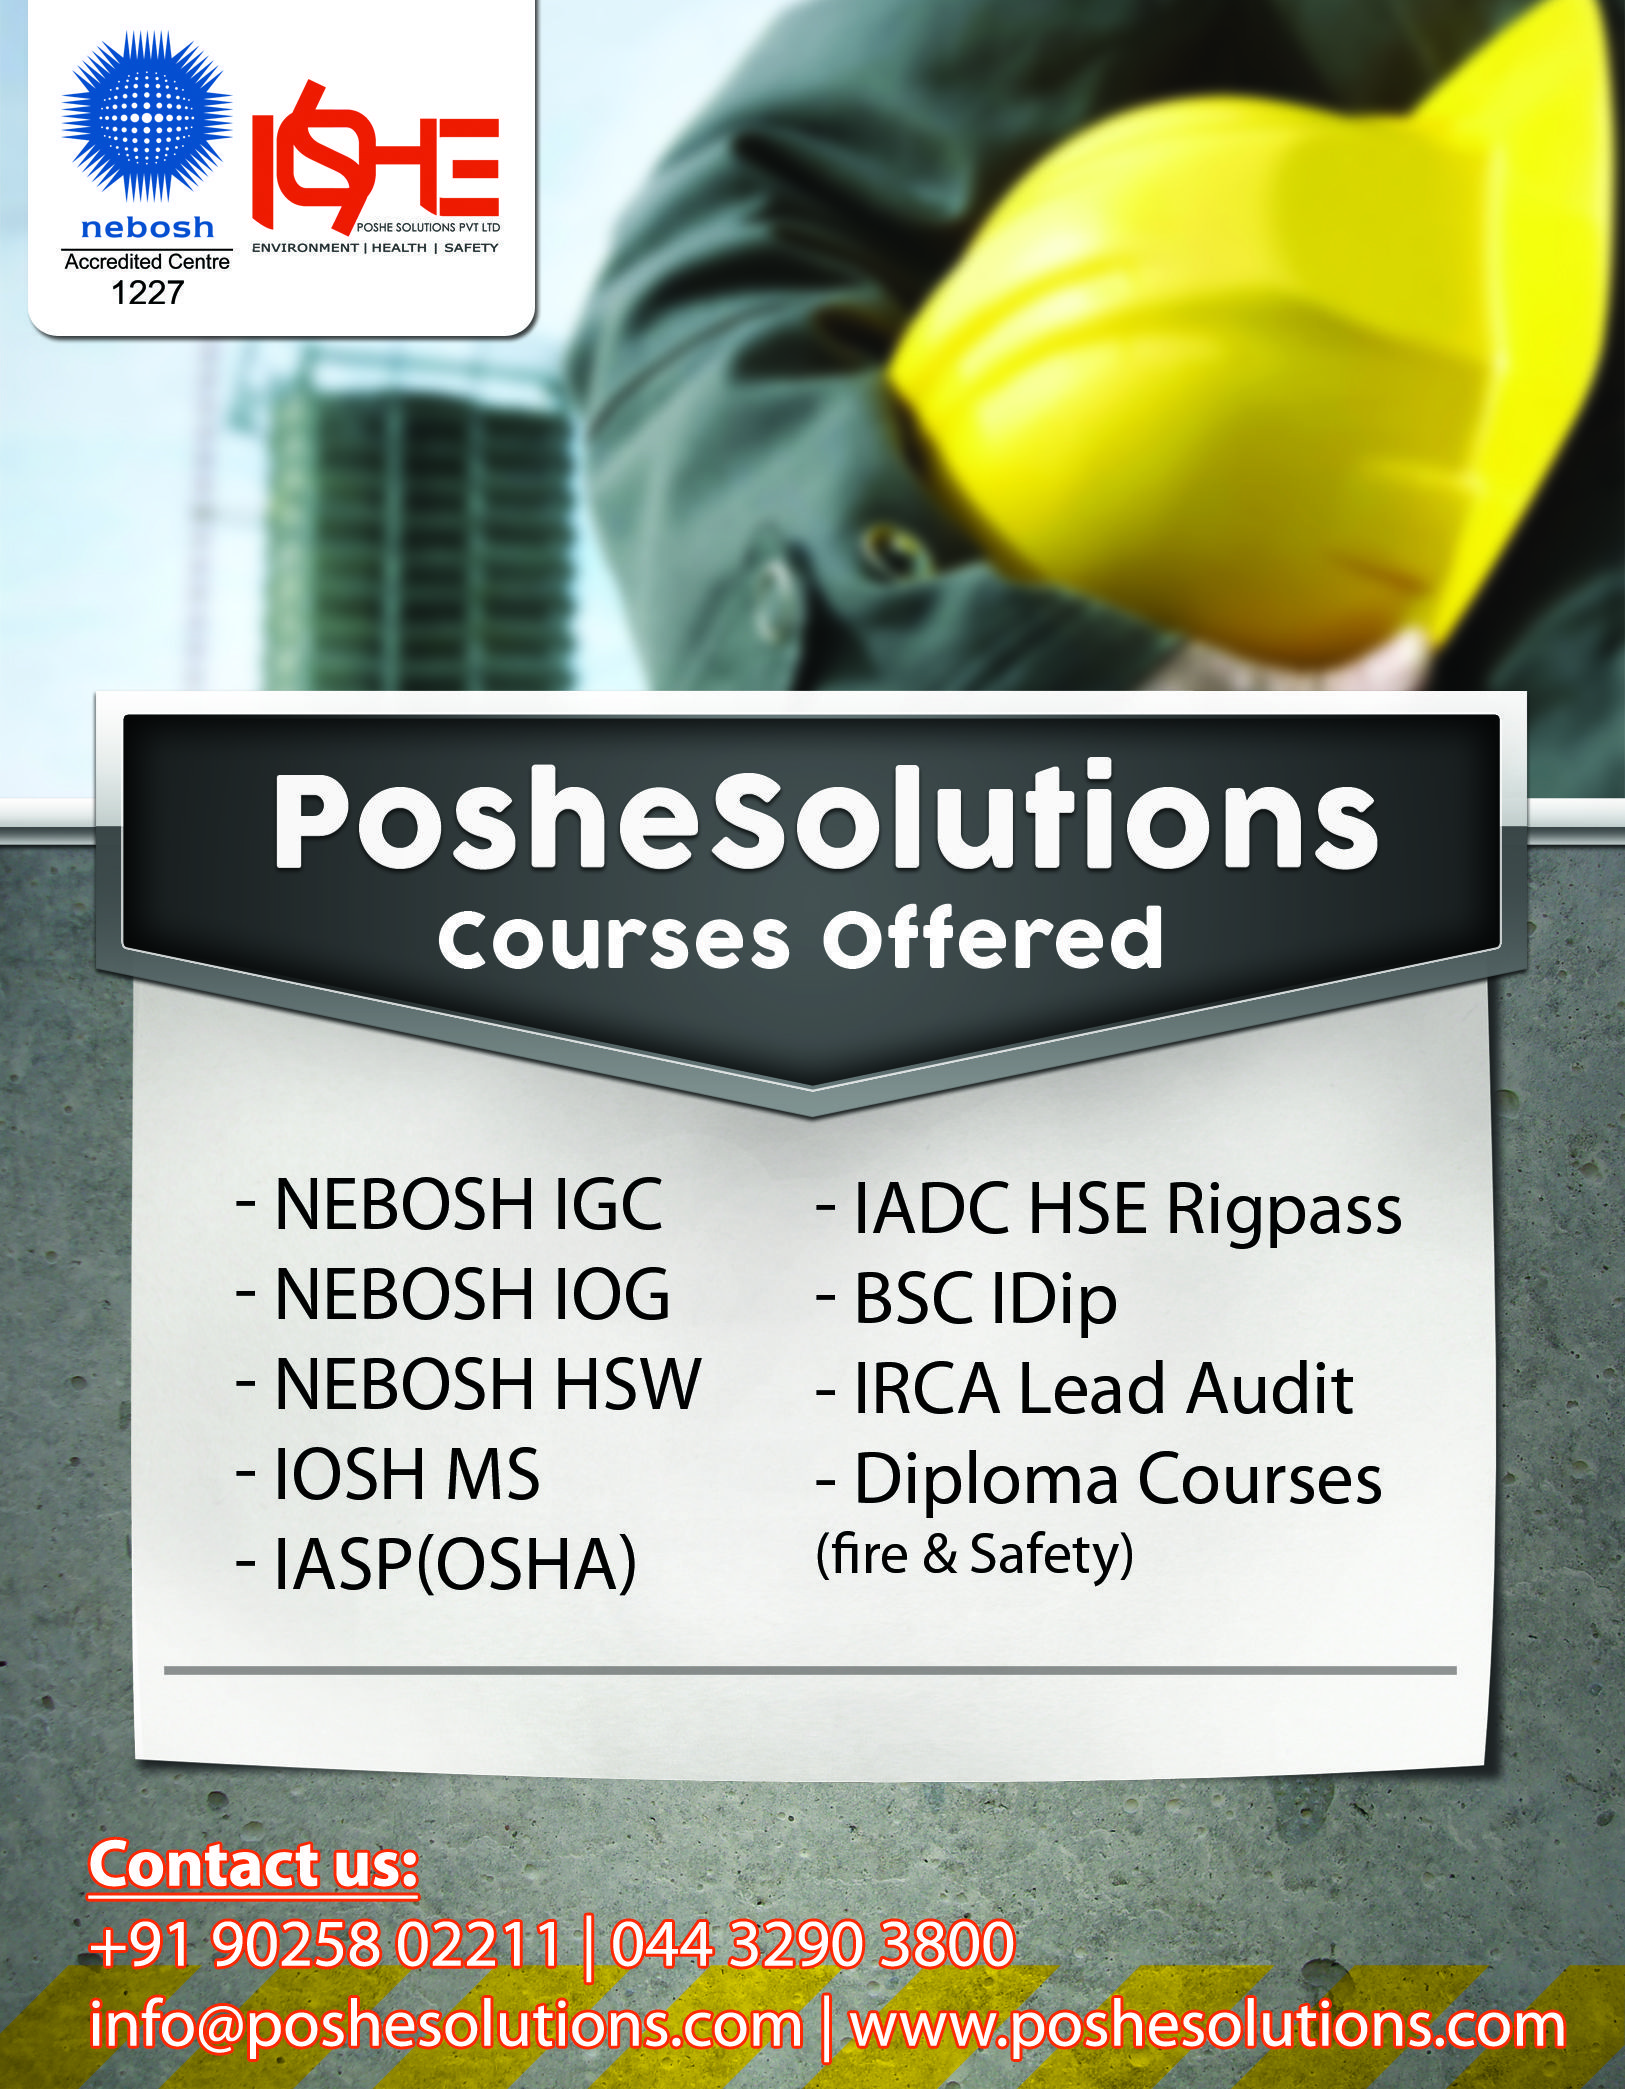 Poshe solutions delivers IOSH Managing Safely training